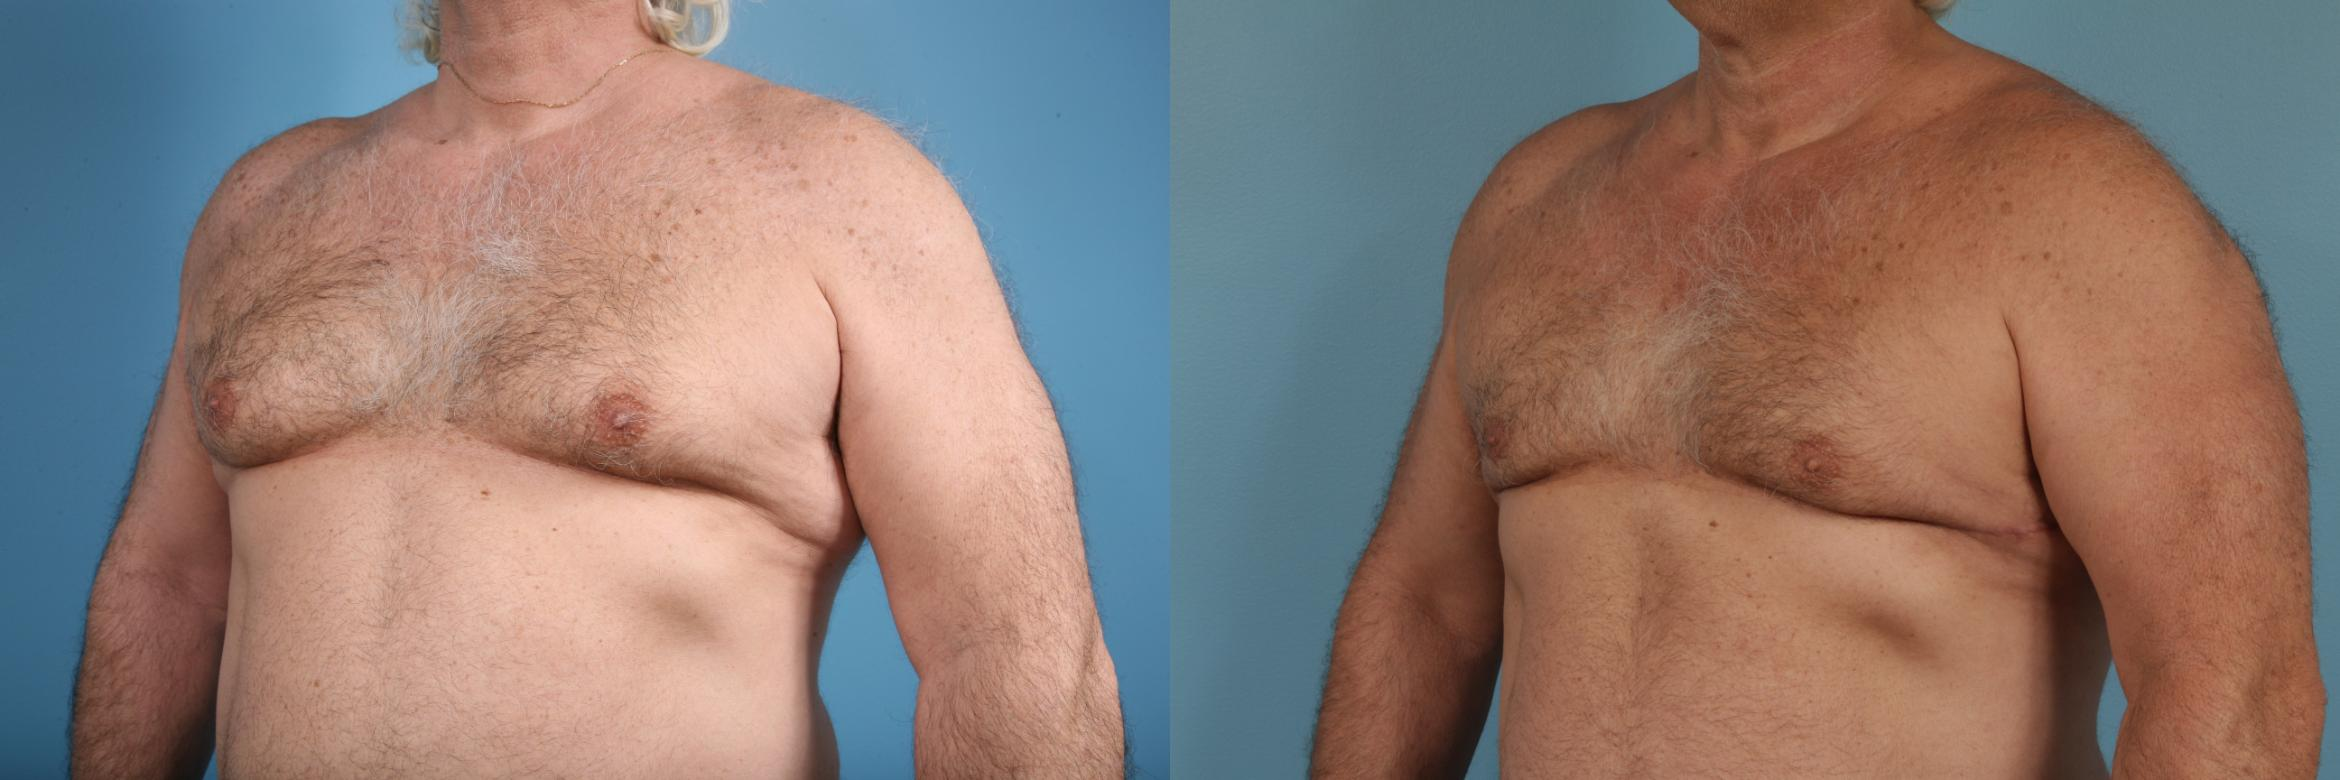 Male Breast Reduction (Gynecomastia) Case 174 Before & After View #2 | Chicago, IL | TLKM Plastic Surgery